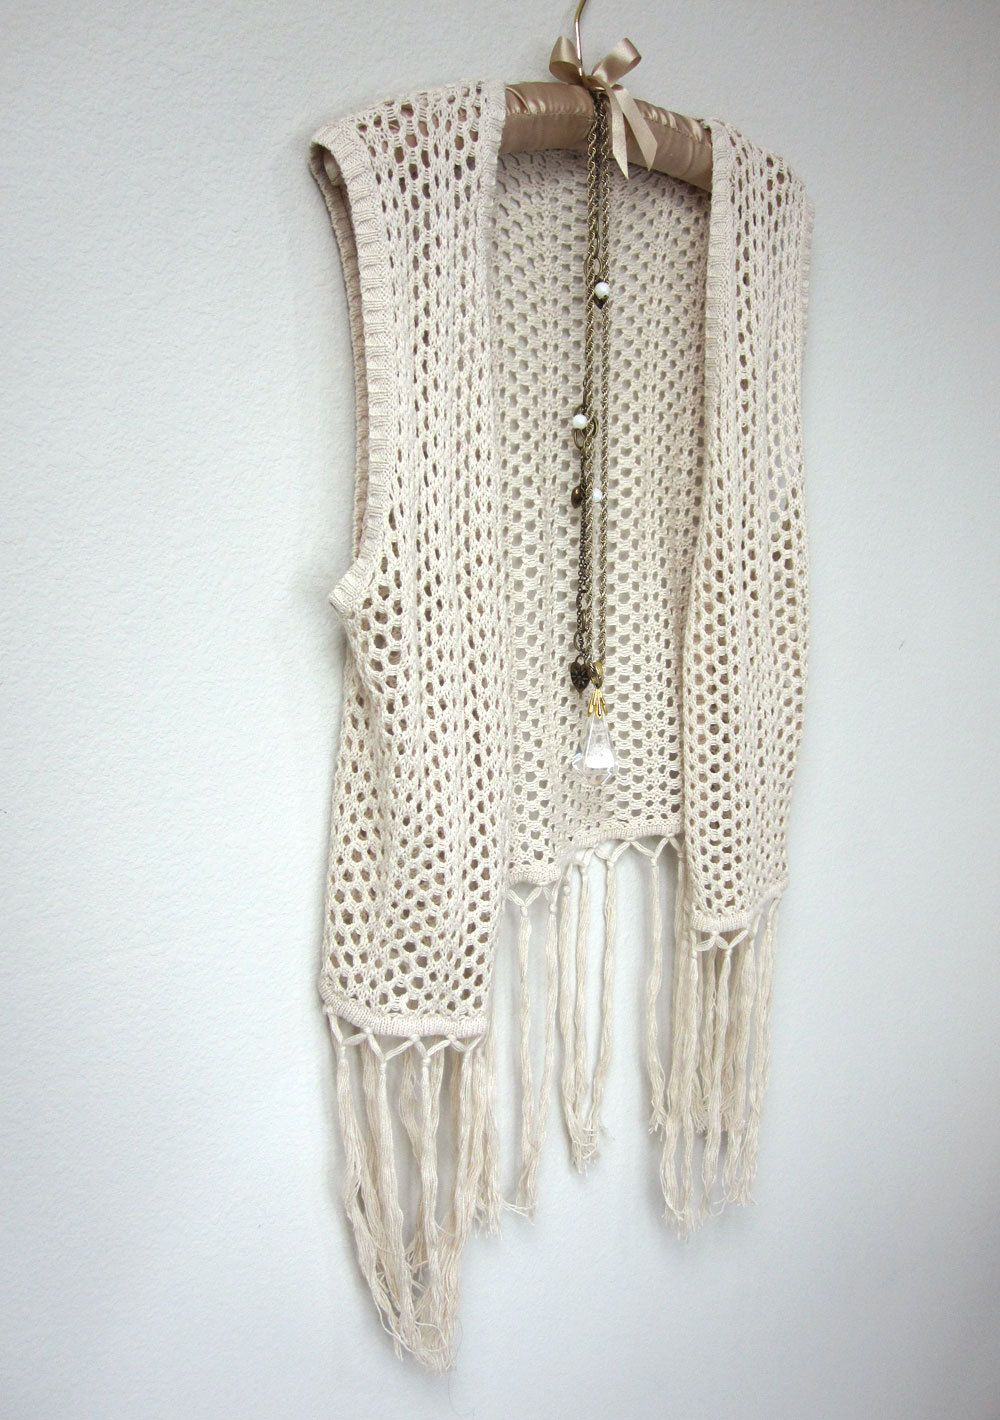 Boho Light Beige, Cream Crochet Fringe Vest, Open Weave With Long Fringe  Hem,